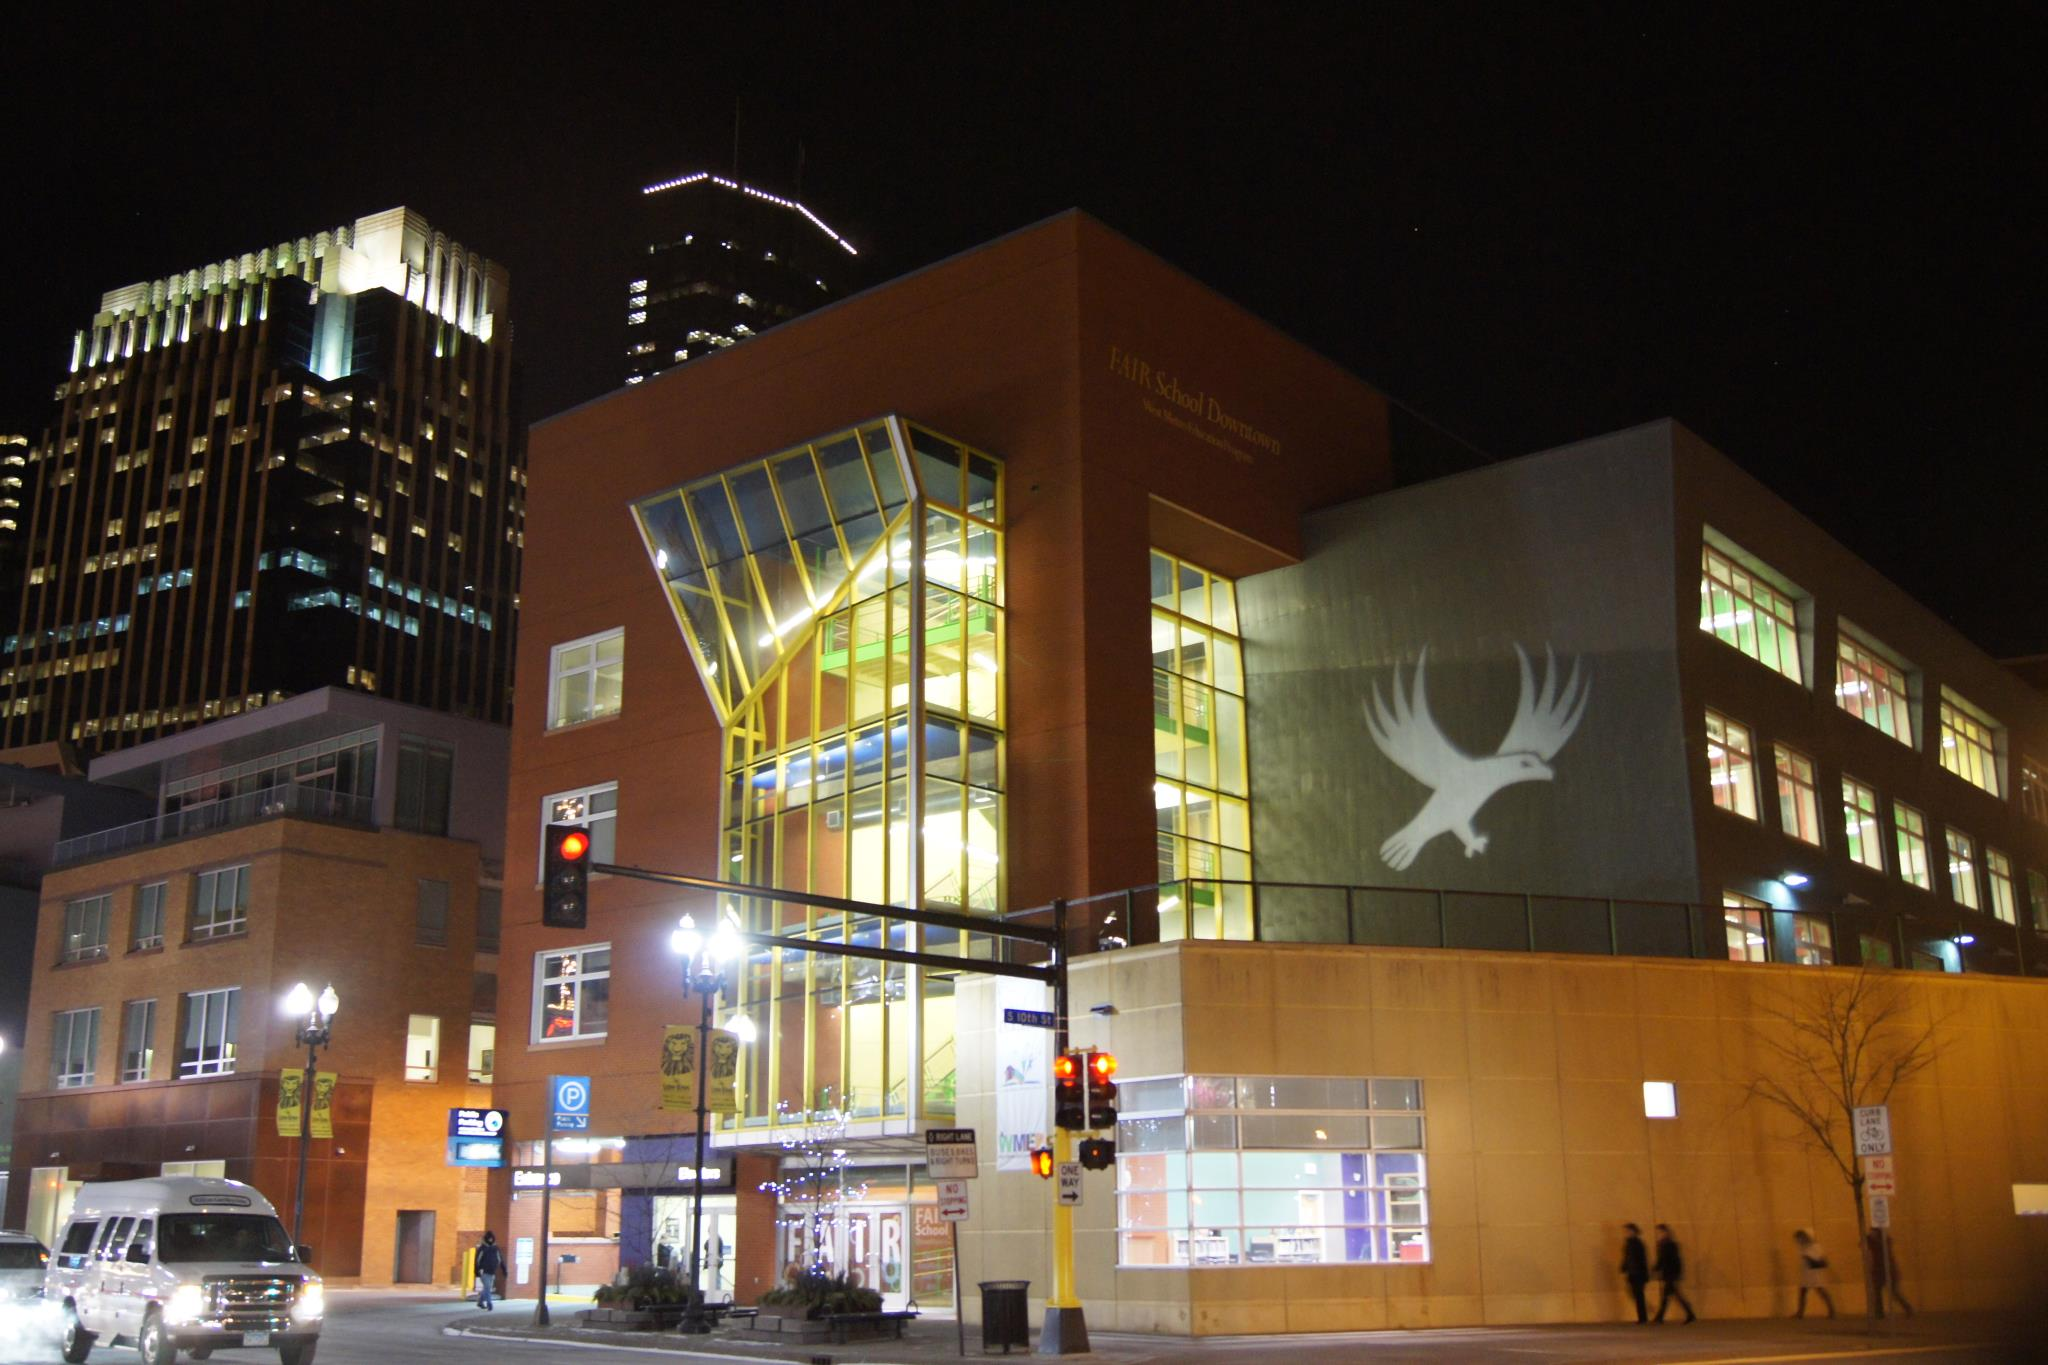 The FAIR School Downtown - Part of Minneapolis Public Schools, The FAIR School is rooted in arts, equity, innovation and creativity. Providing rich arts programming, cultural understanding, global citizenship and a robust network of partnerships, FAIR personalizes learning for all 9-12 students. Designed by Cuningham Group, innovative learning spaces intersperse with traditional classrooms.